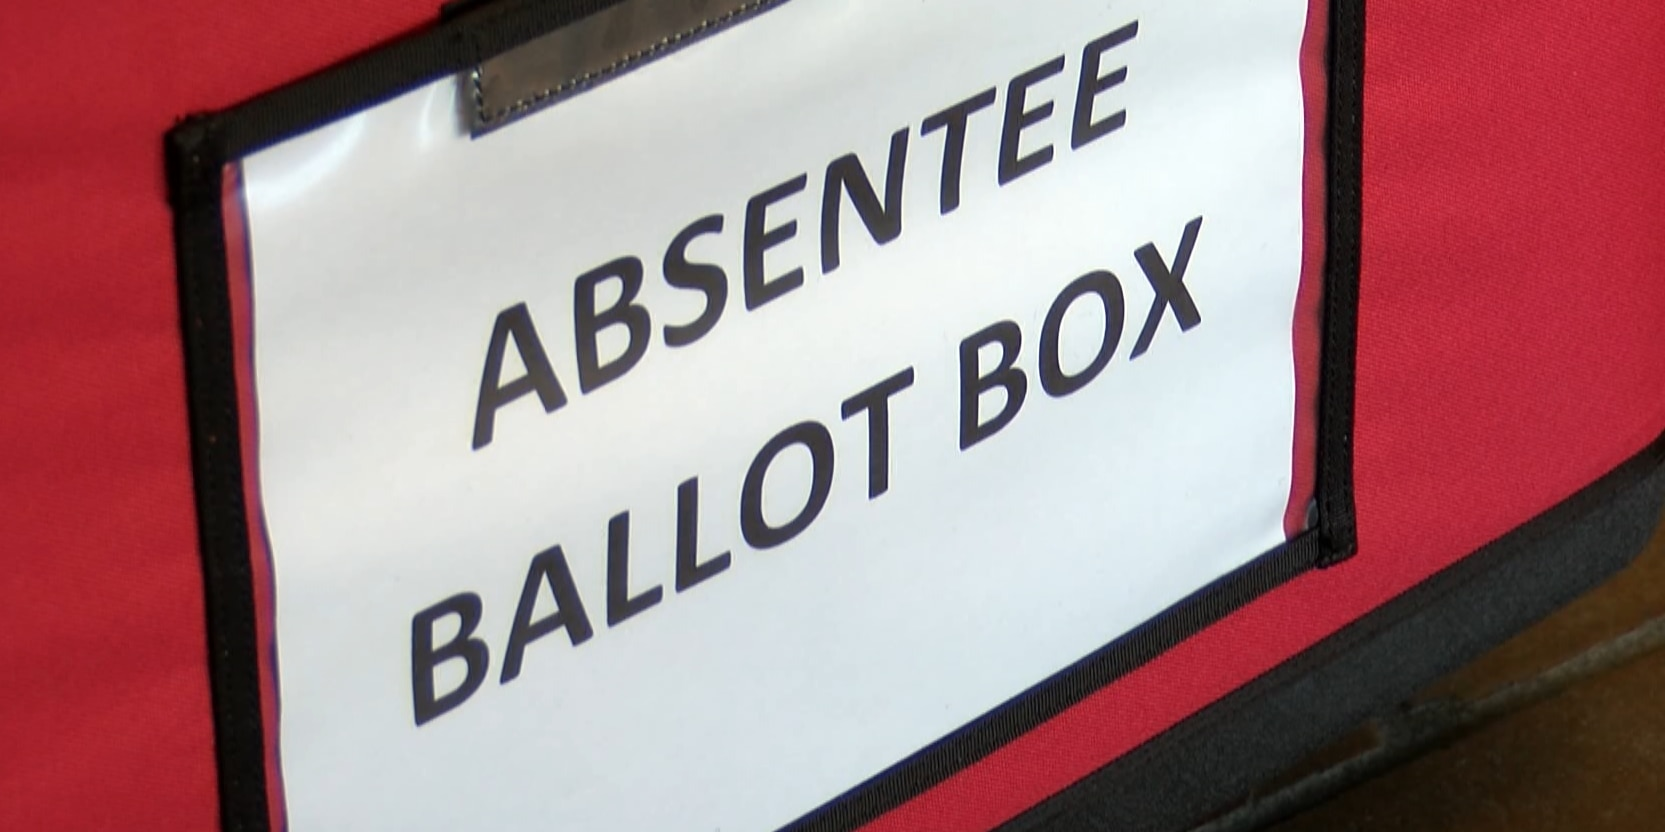 Double absentee ballots accidentally sent to some Henrico voters